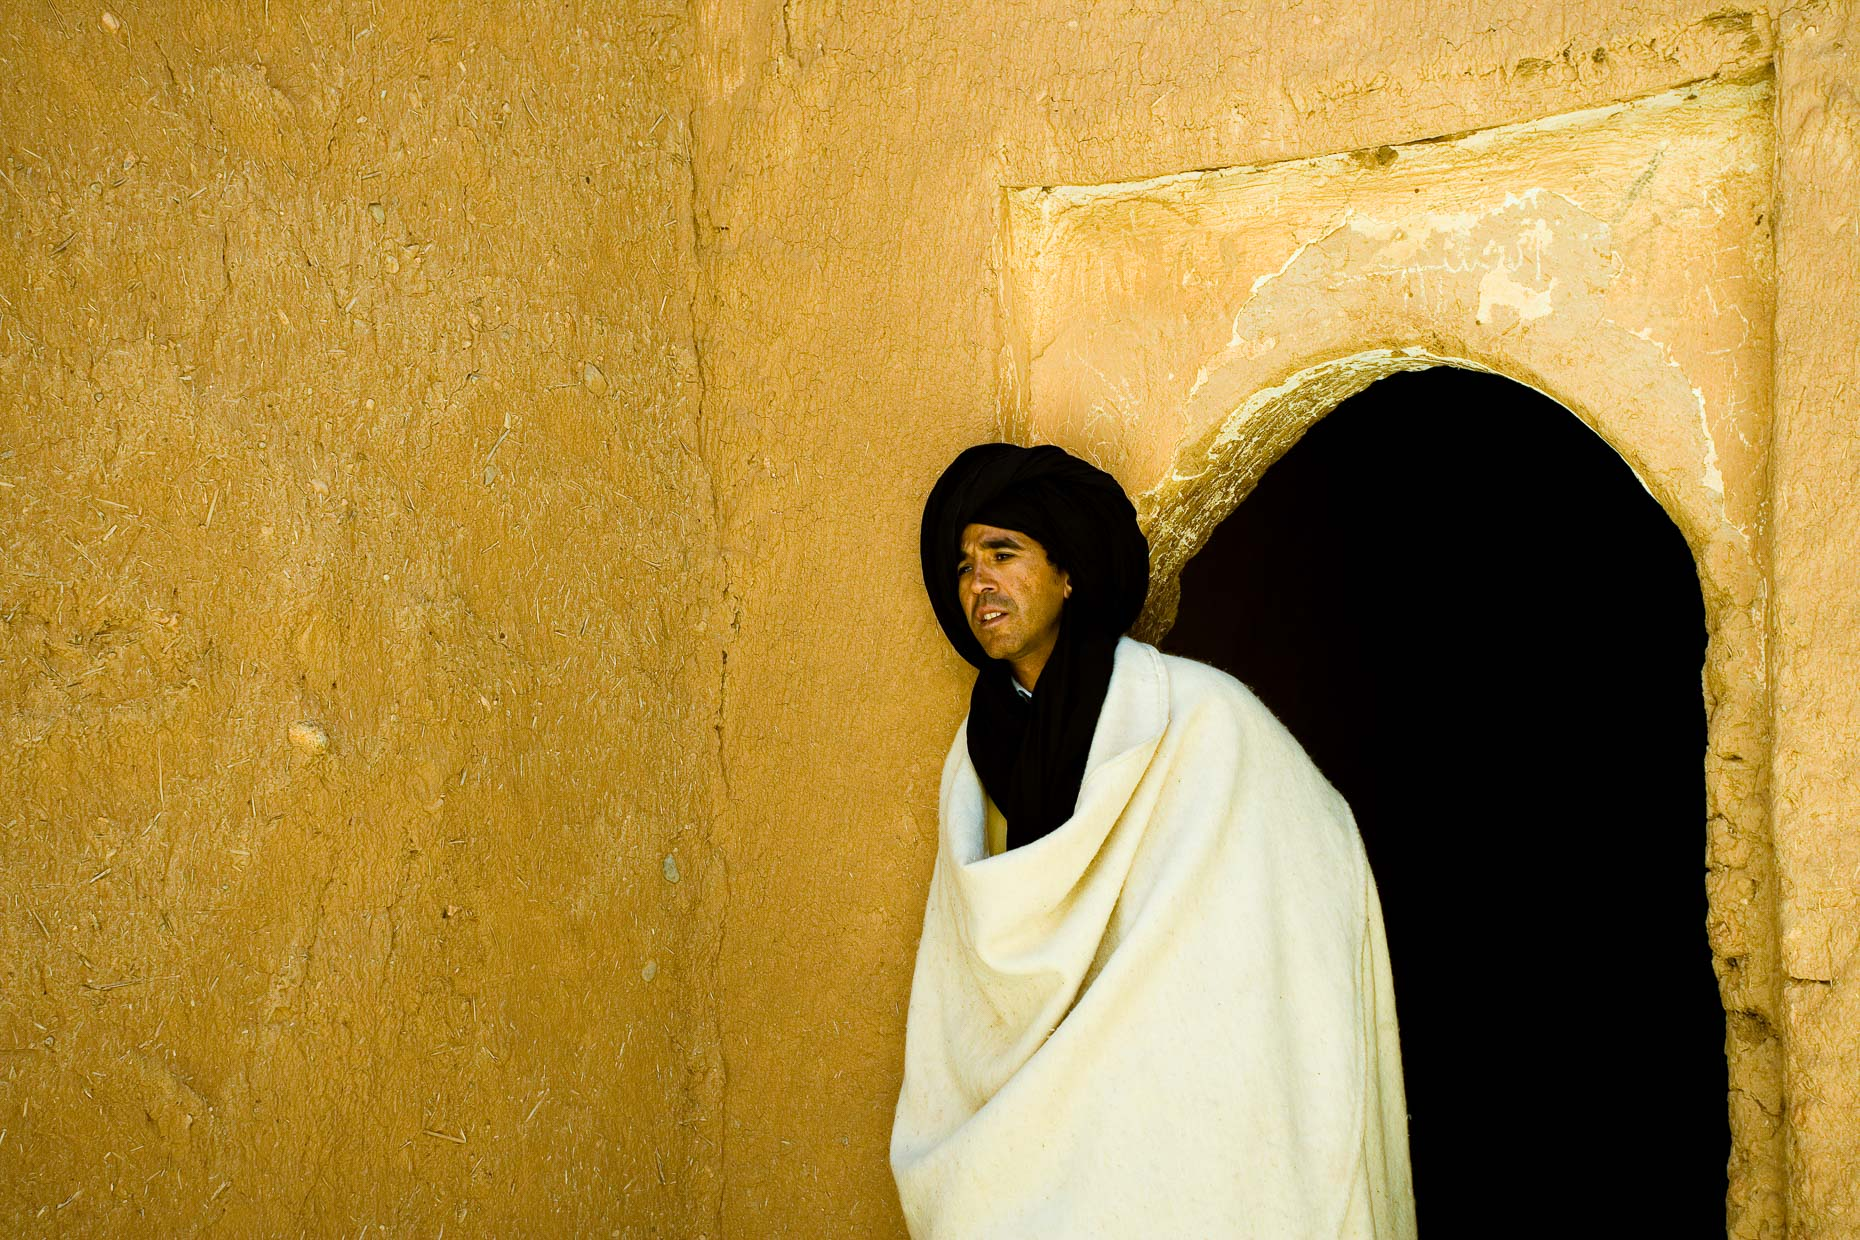 Our Berber Friend in Morocco | Dignity | Portraits | Travel | Culture